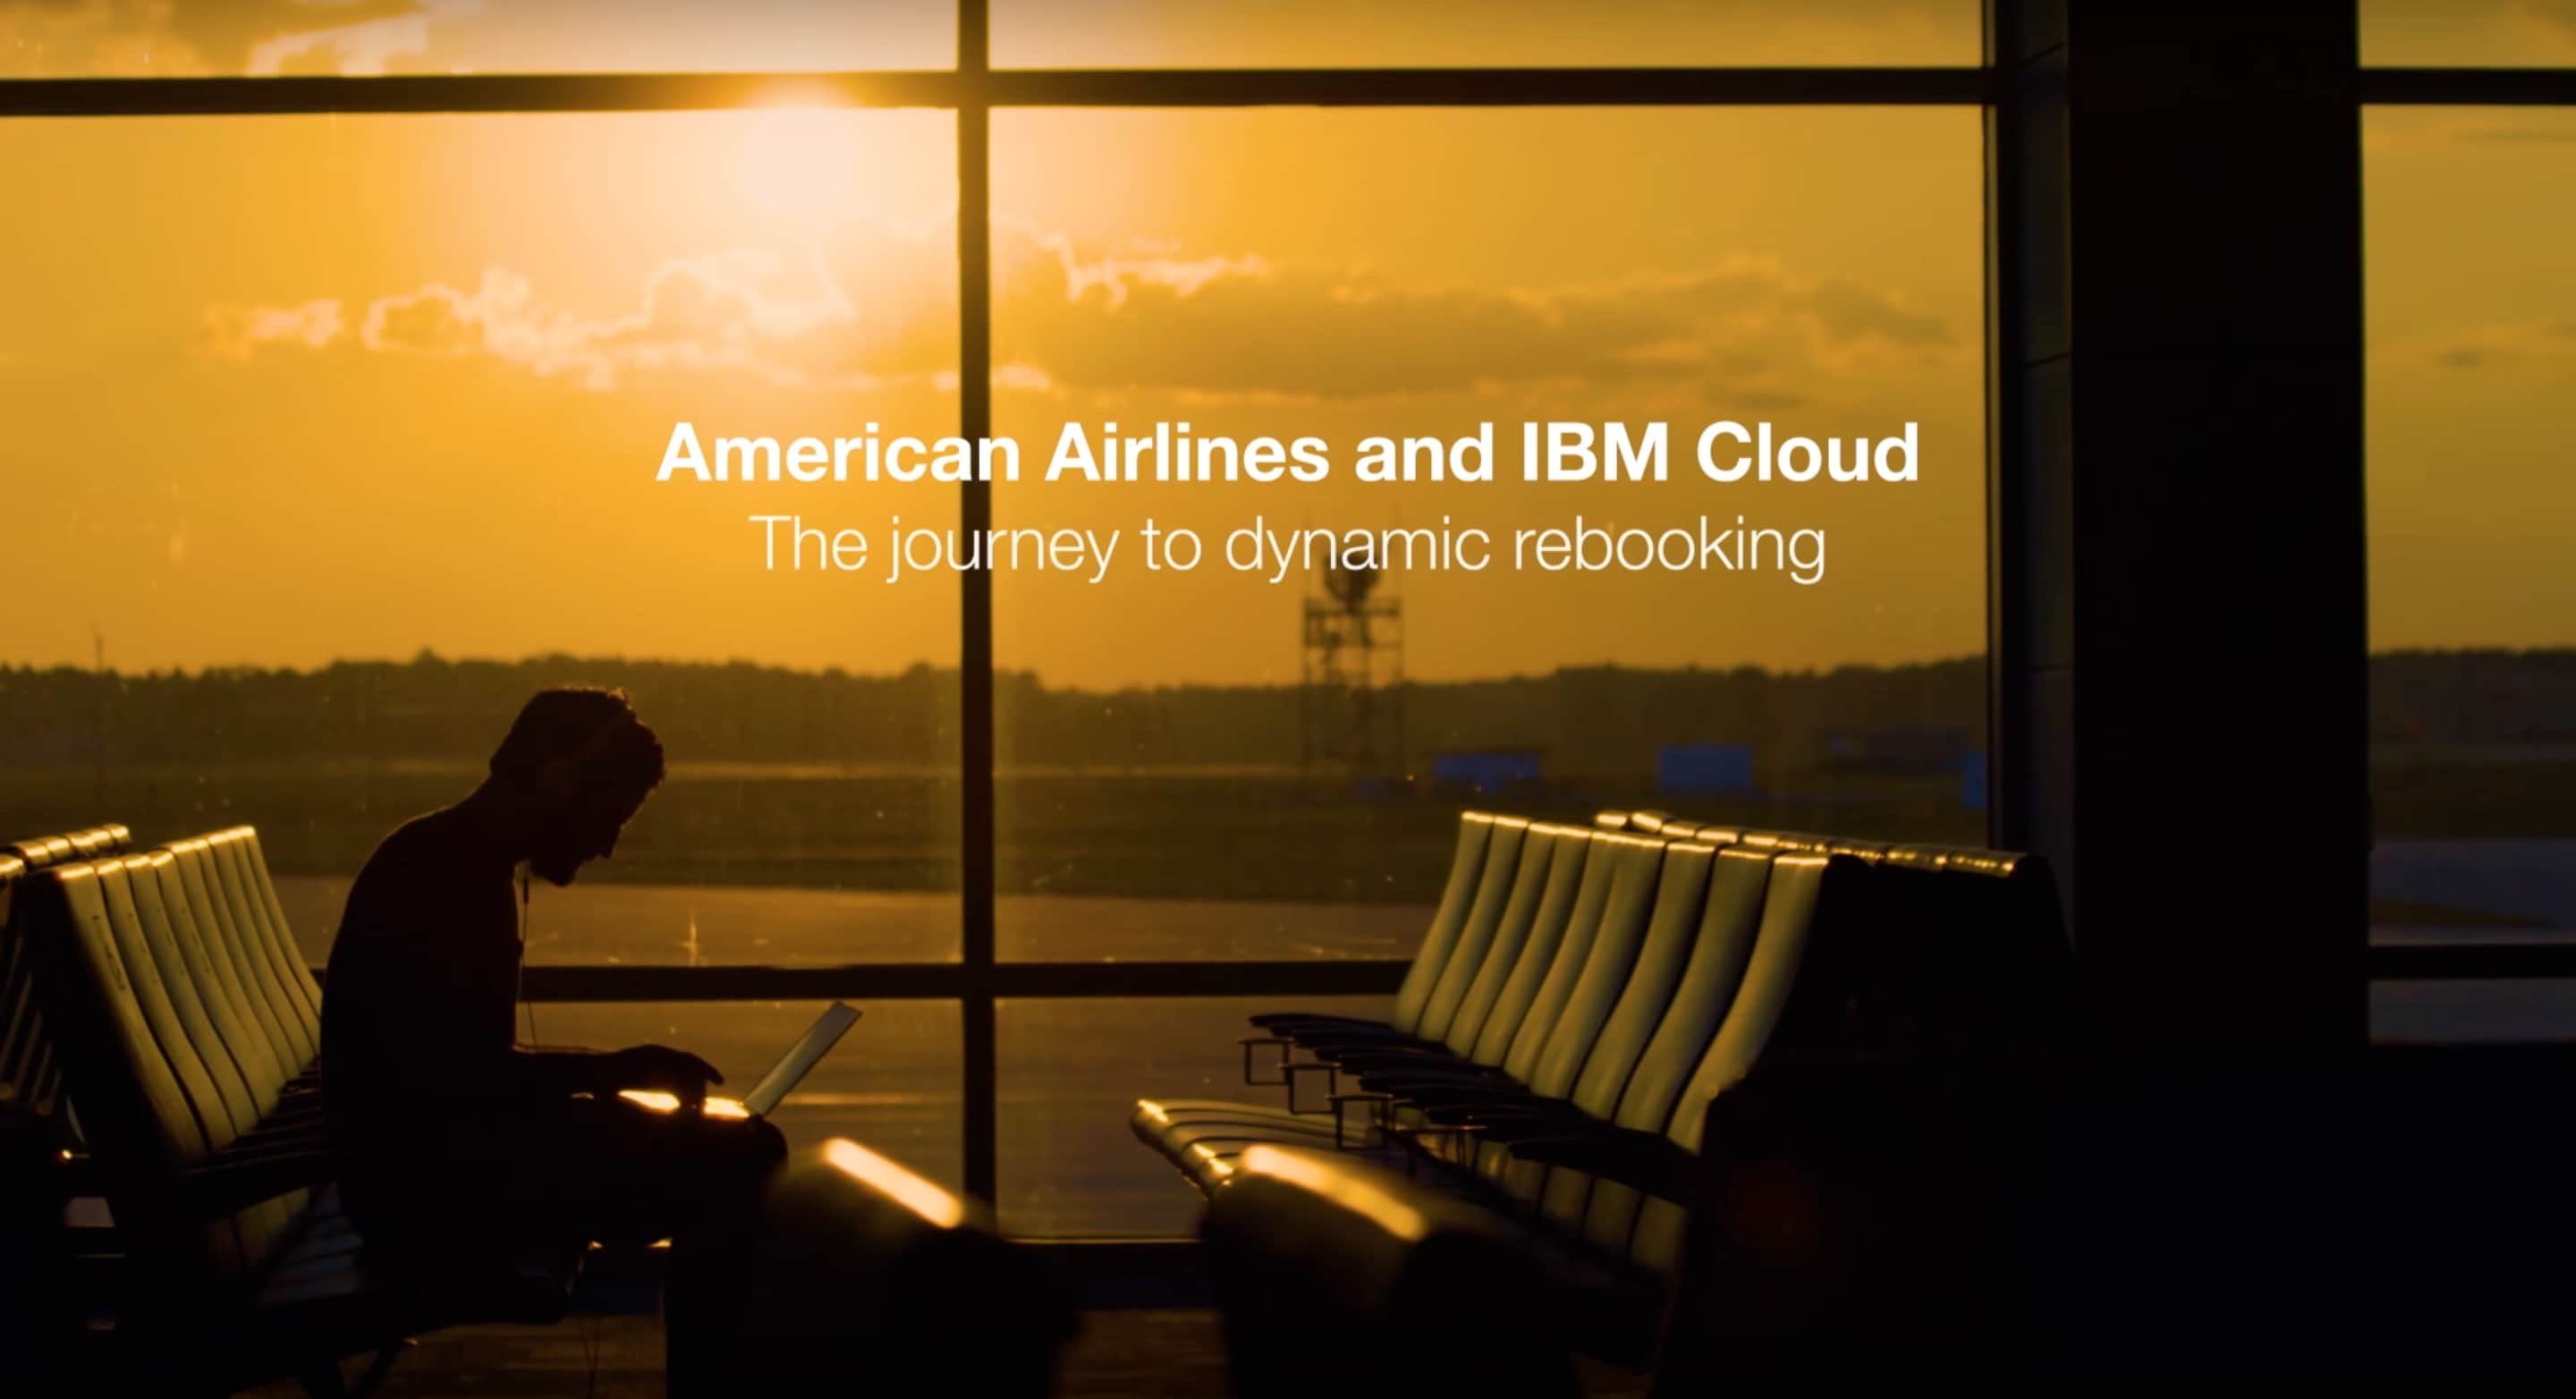 American Airlines and IBM Cloud